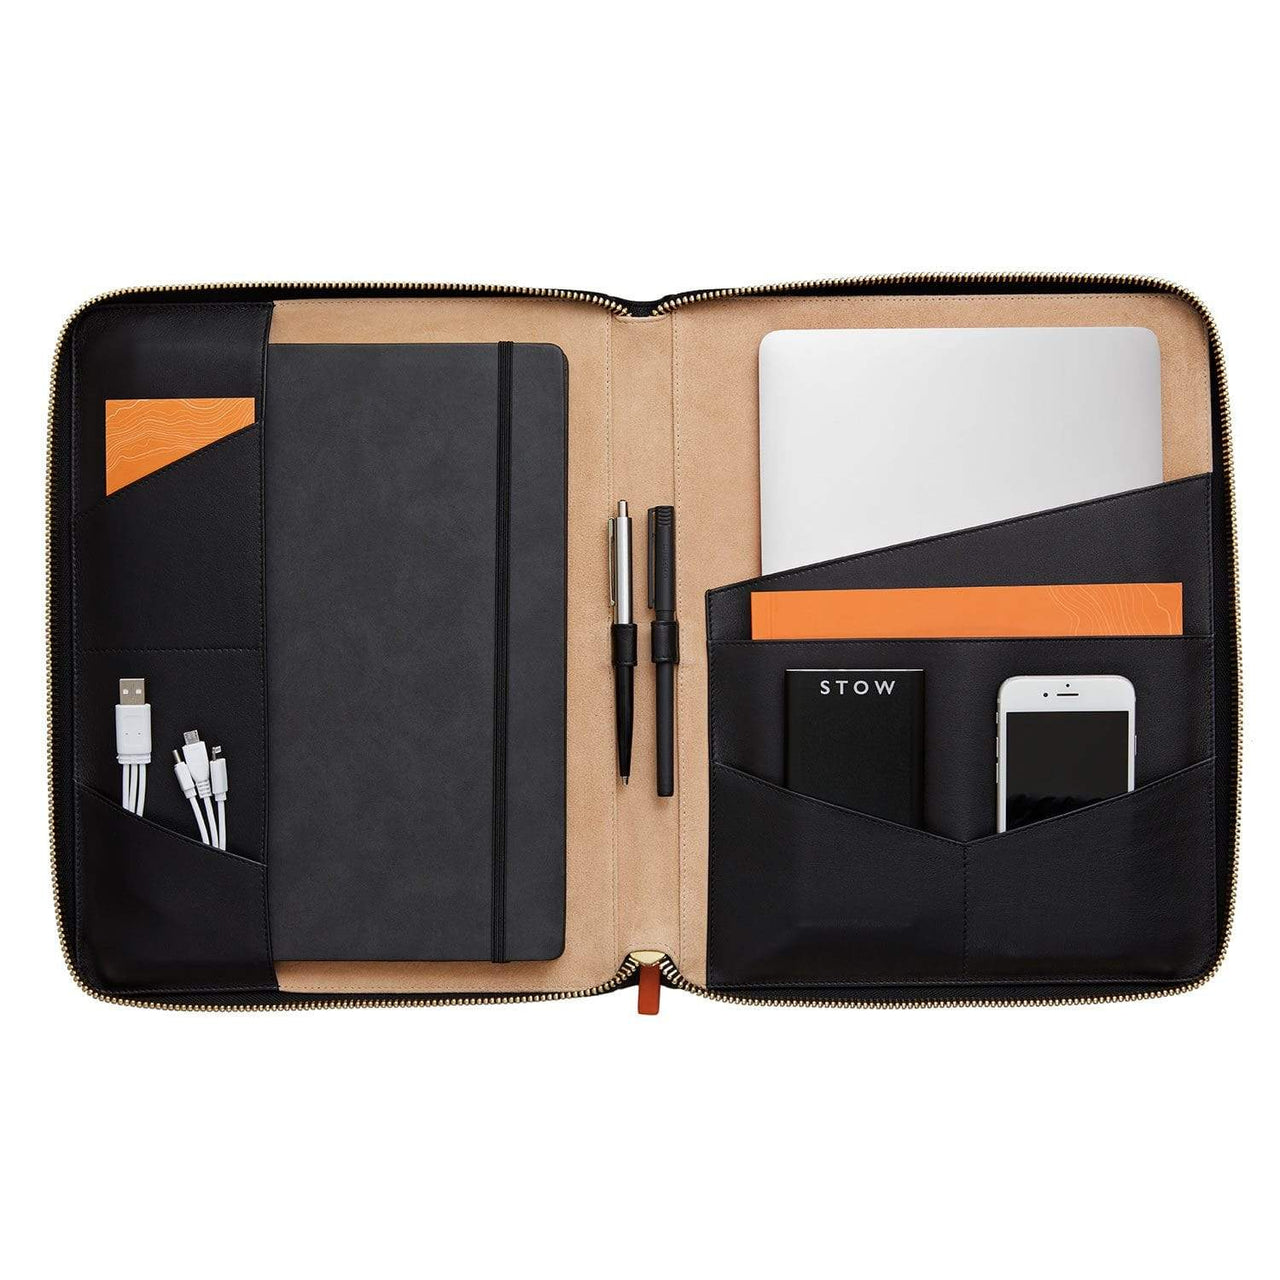 STOW Tablet Cases Jet & Soft Tan / Black / Blind The Executive Folio Tech Case- Personalized